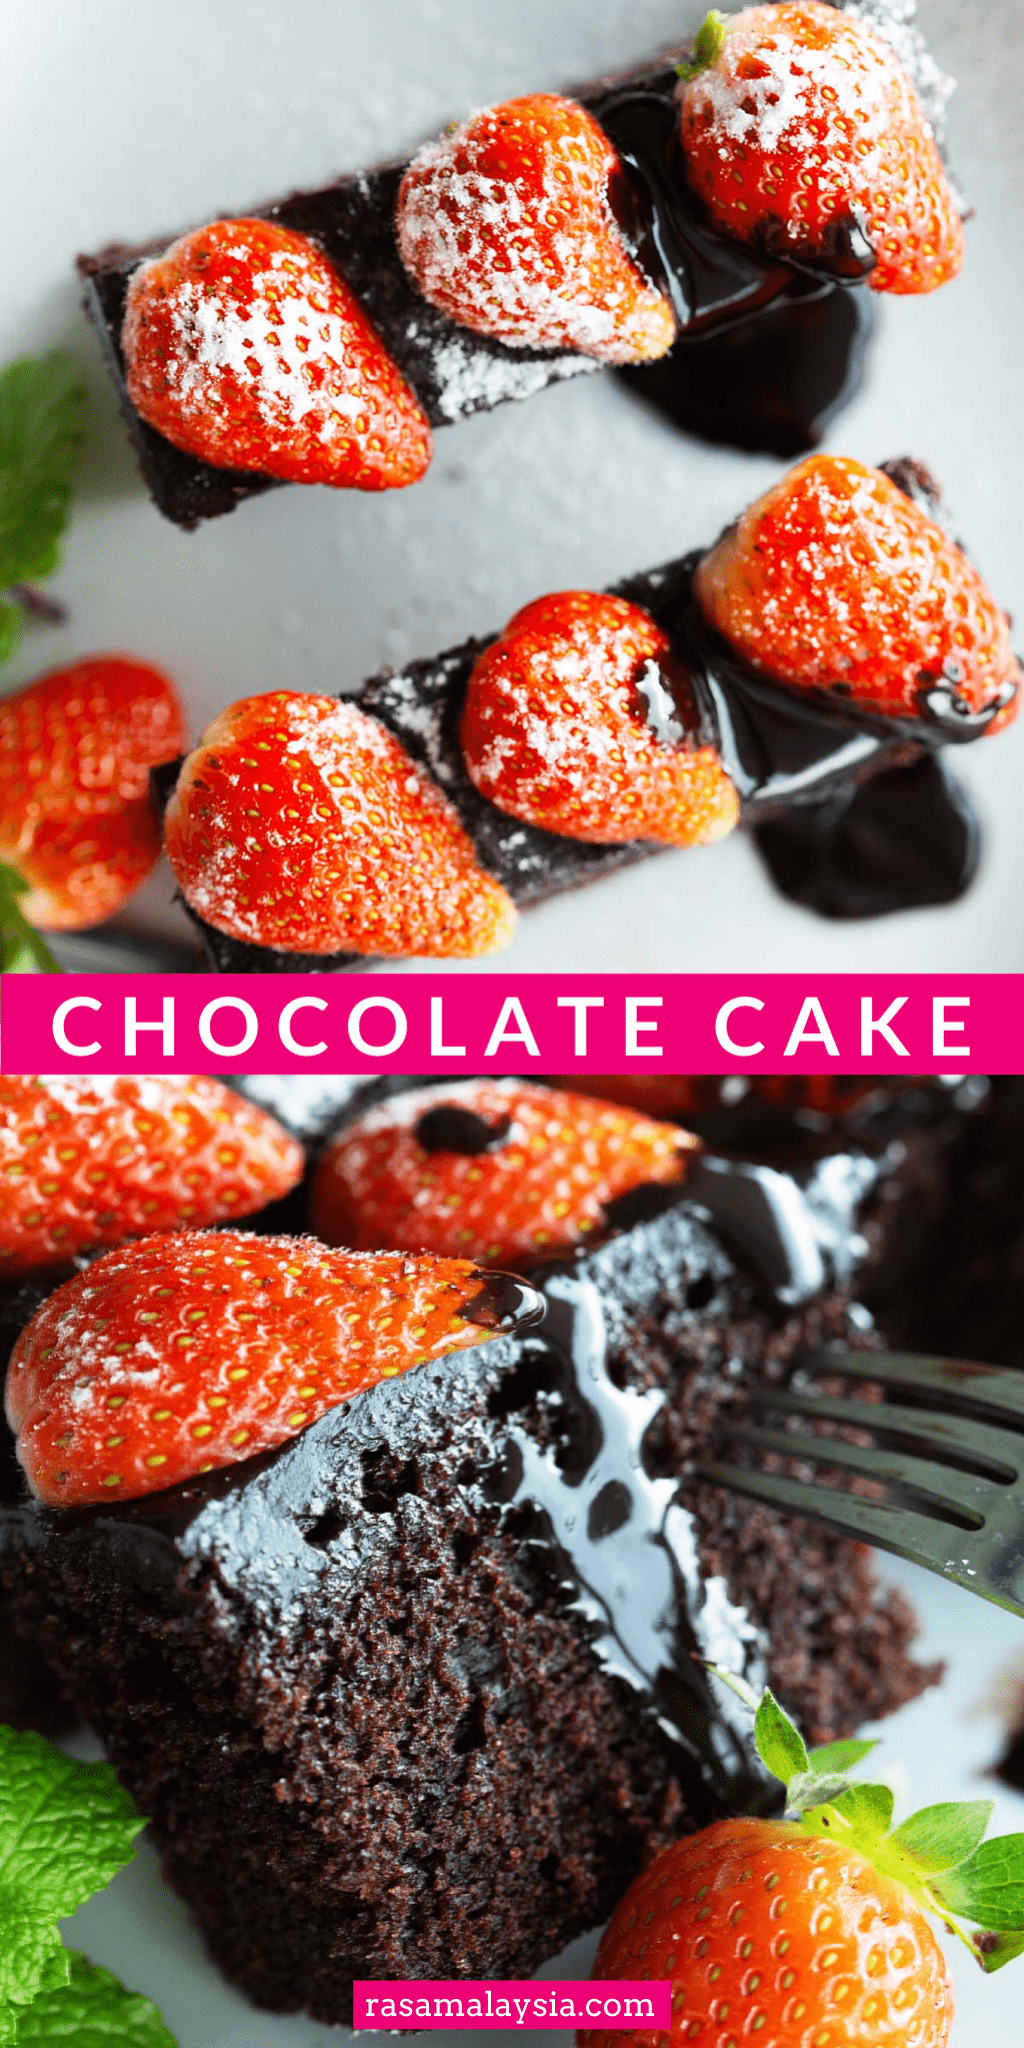 Chocolate Cake - super rich and easy chocolate cake recipe that makes extremely moist cake topped with a decadent ganache frosting. The world's best cake!